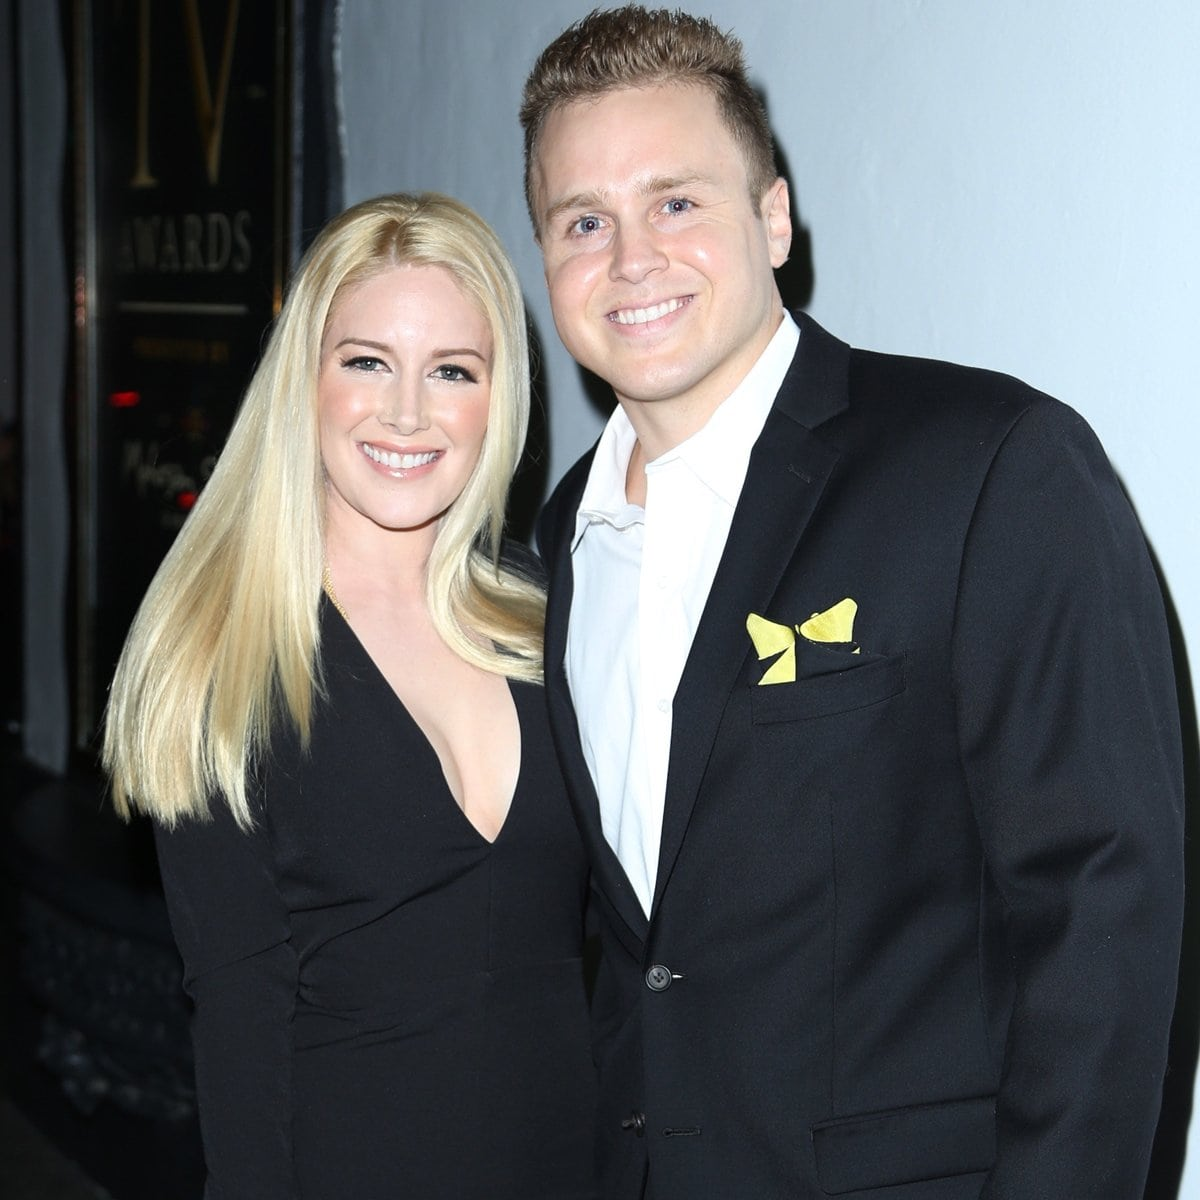 Spencer Pratt says his wife Heidi Montag decided to have surgery because of social media trolls and tabloid comments about her appearance